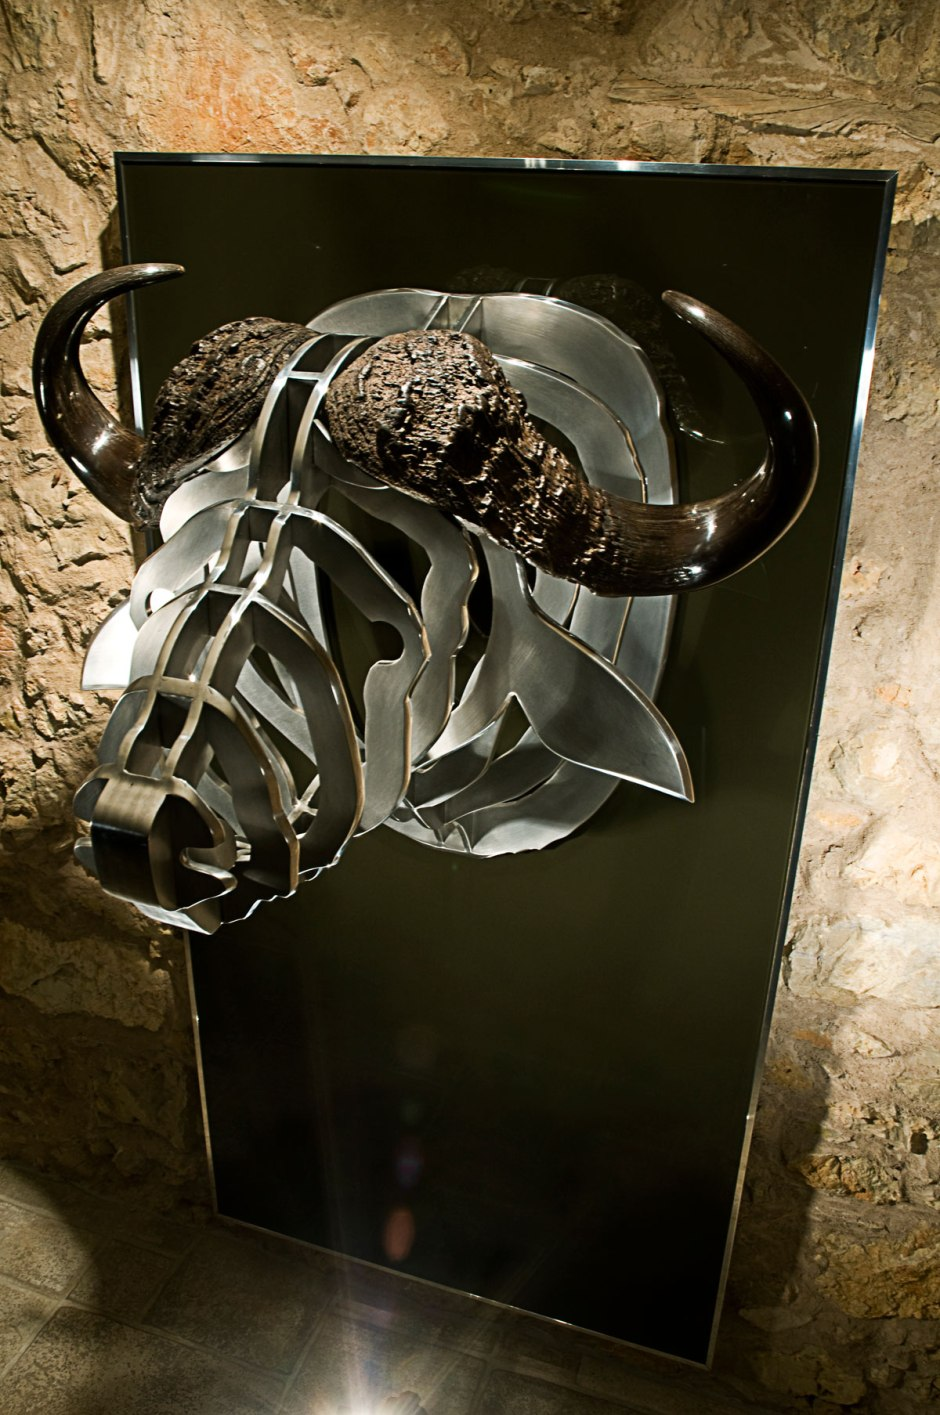 buffalo-octobon-jean-hunting-art-home-decorative-interior-amazing-spectacular-mathieu-chevalley